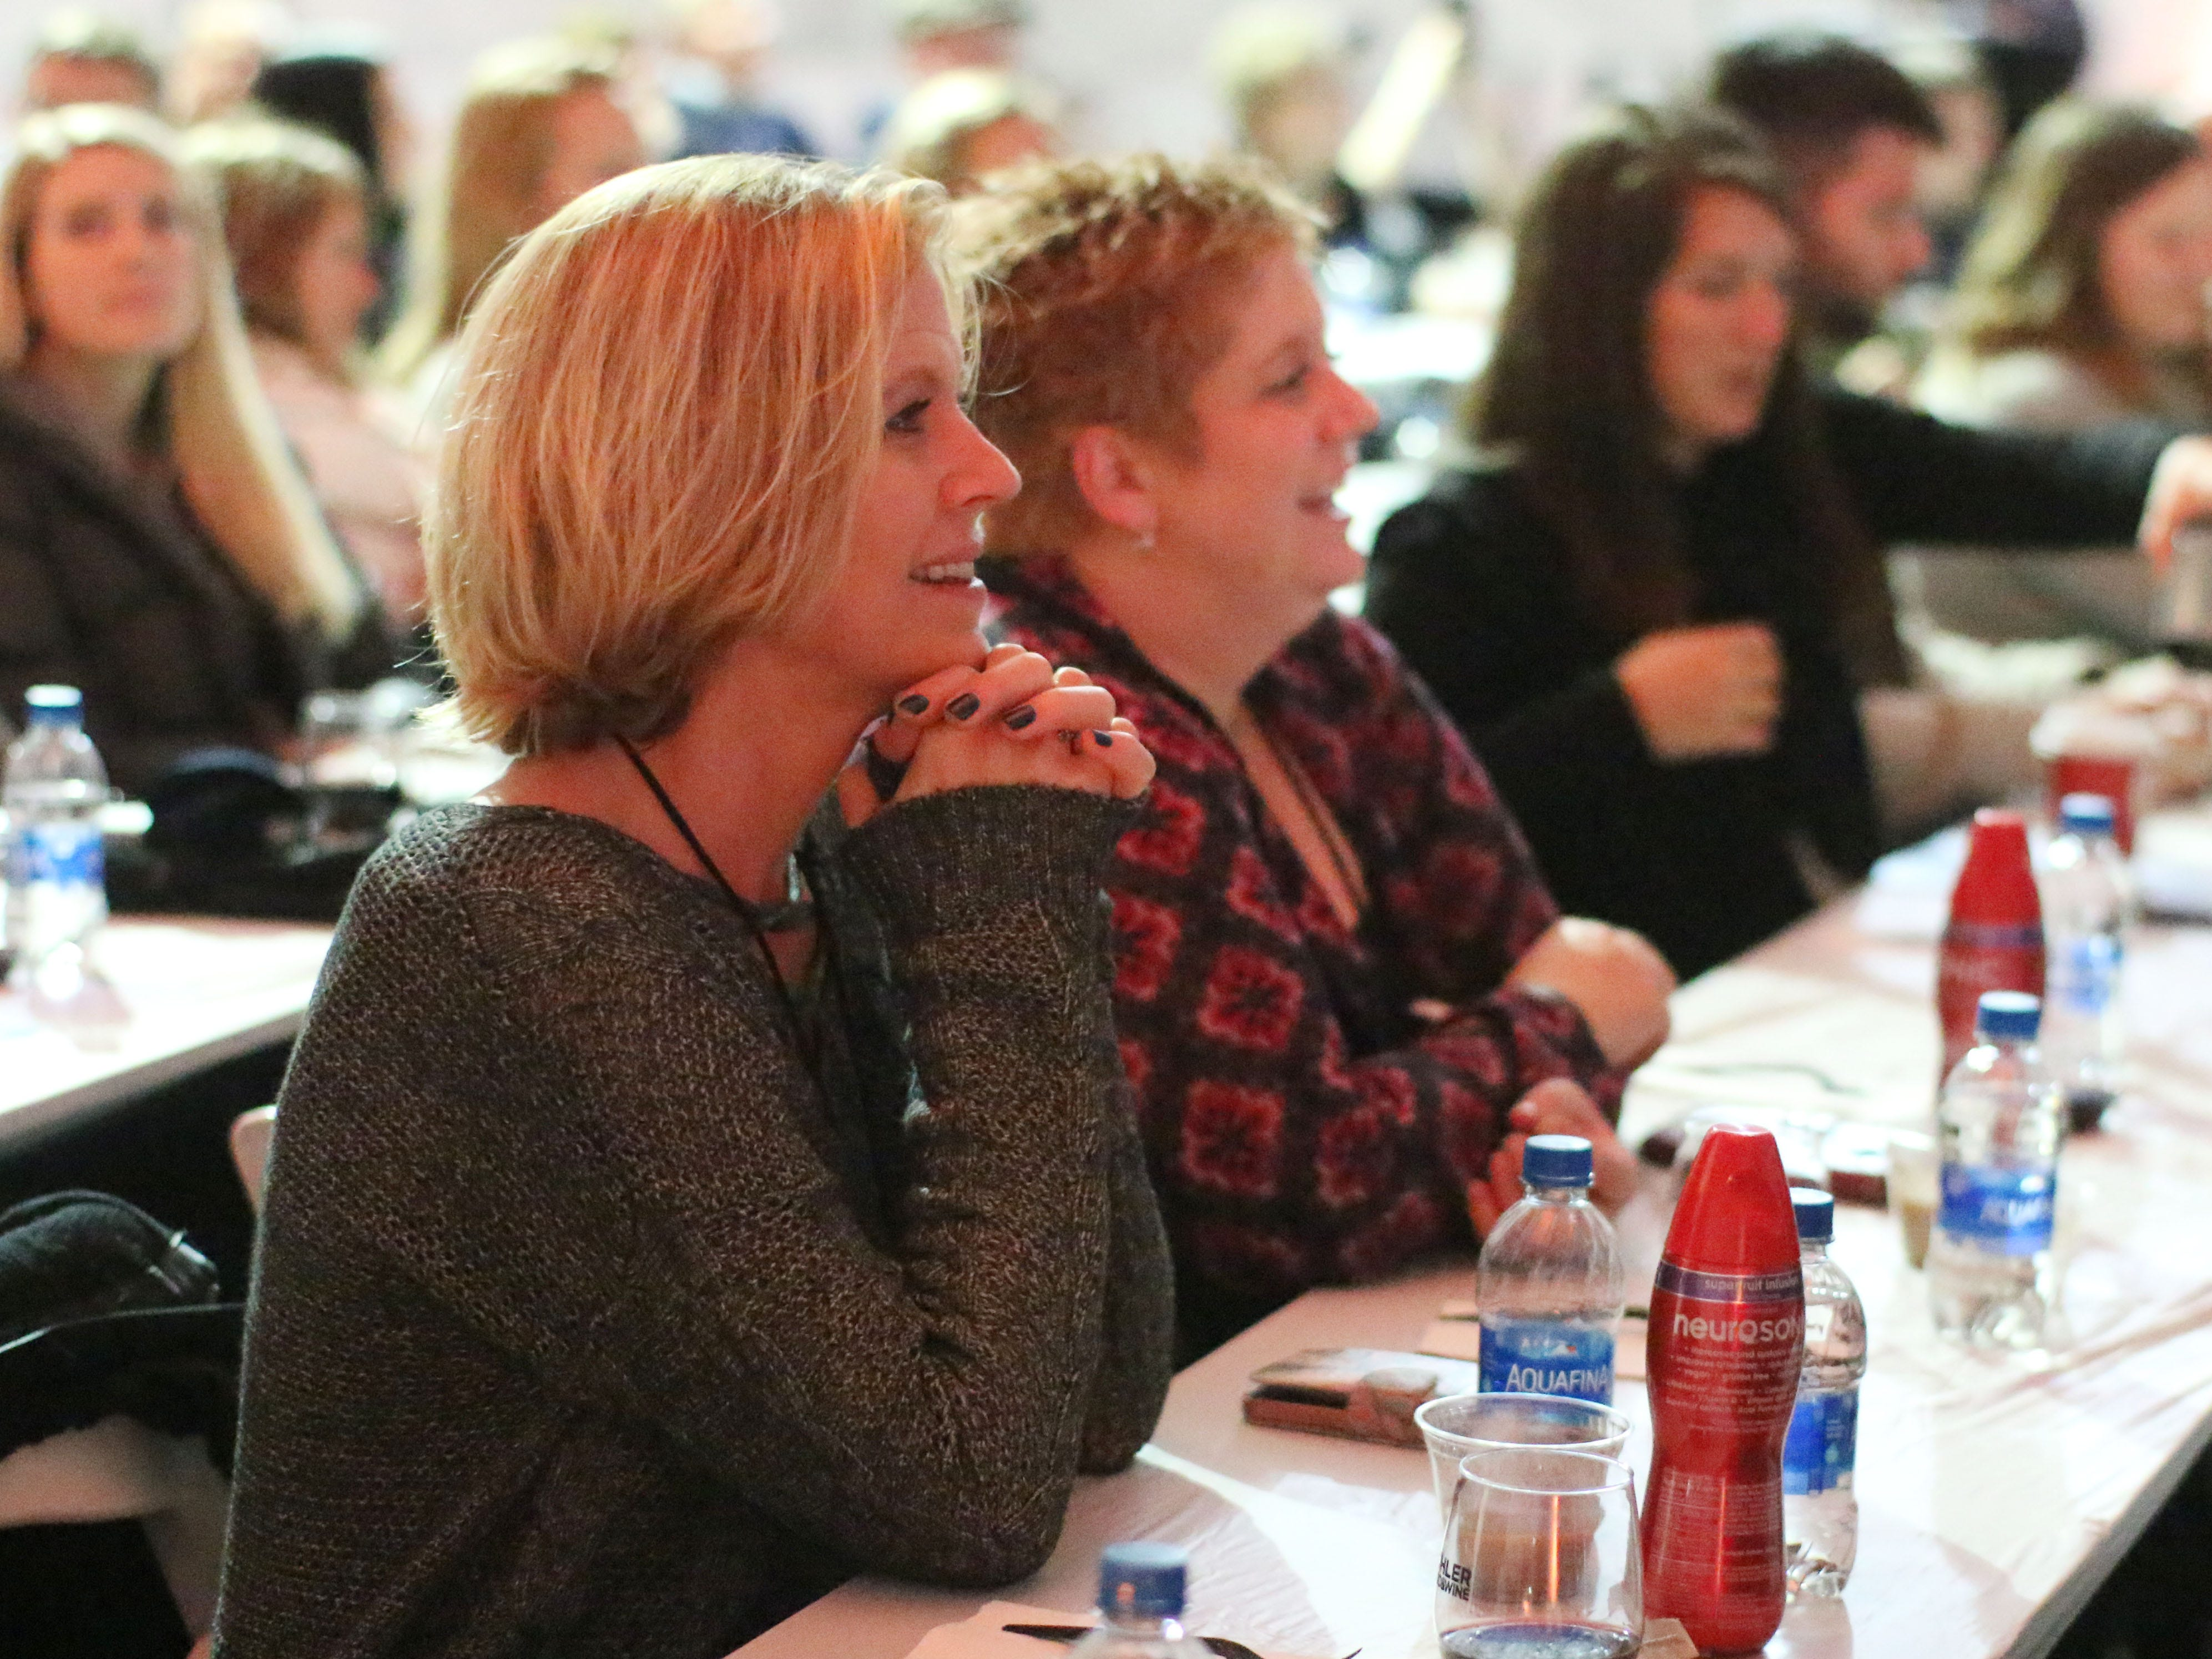 People listen to celebrity chef Fabio Viviani during Kohler Food and Wine, Saturday, October 20, 2018, in Kohler, Wis.